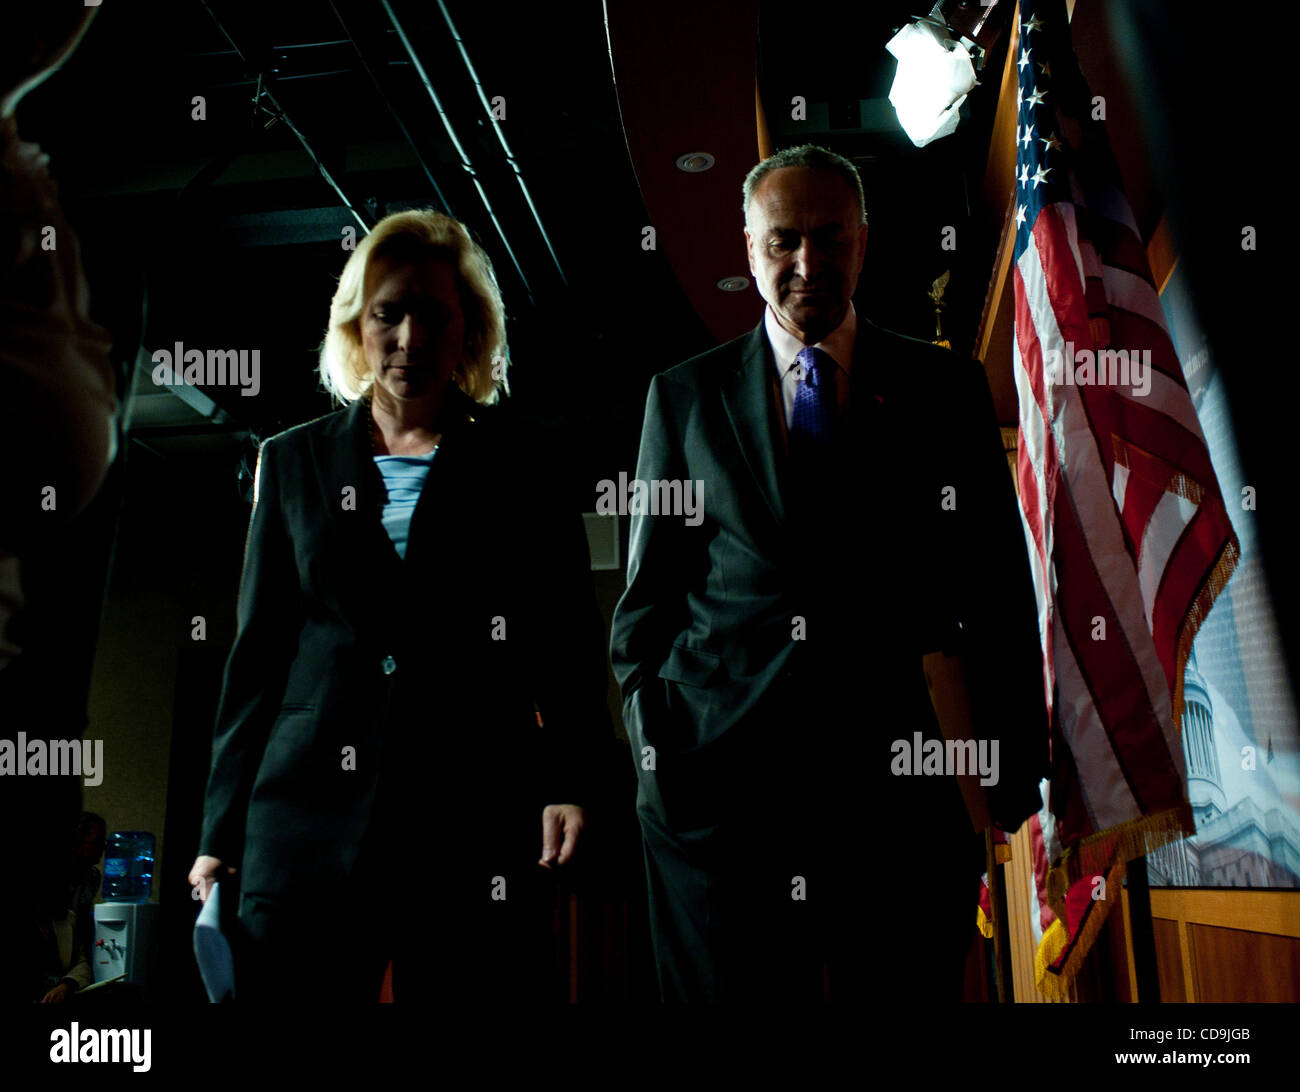 Jul 14, 2010 - Washington, District of Columbia, U.S., -  Senators Kirsten Gillibrand and Charles Schumer leave - Stock Image